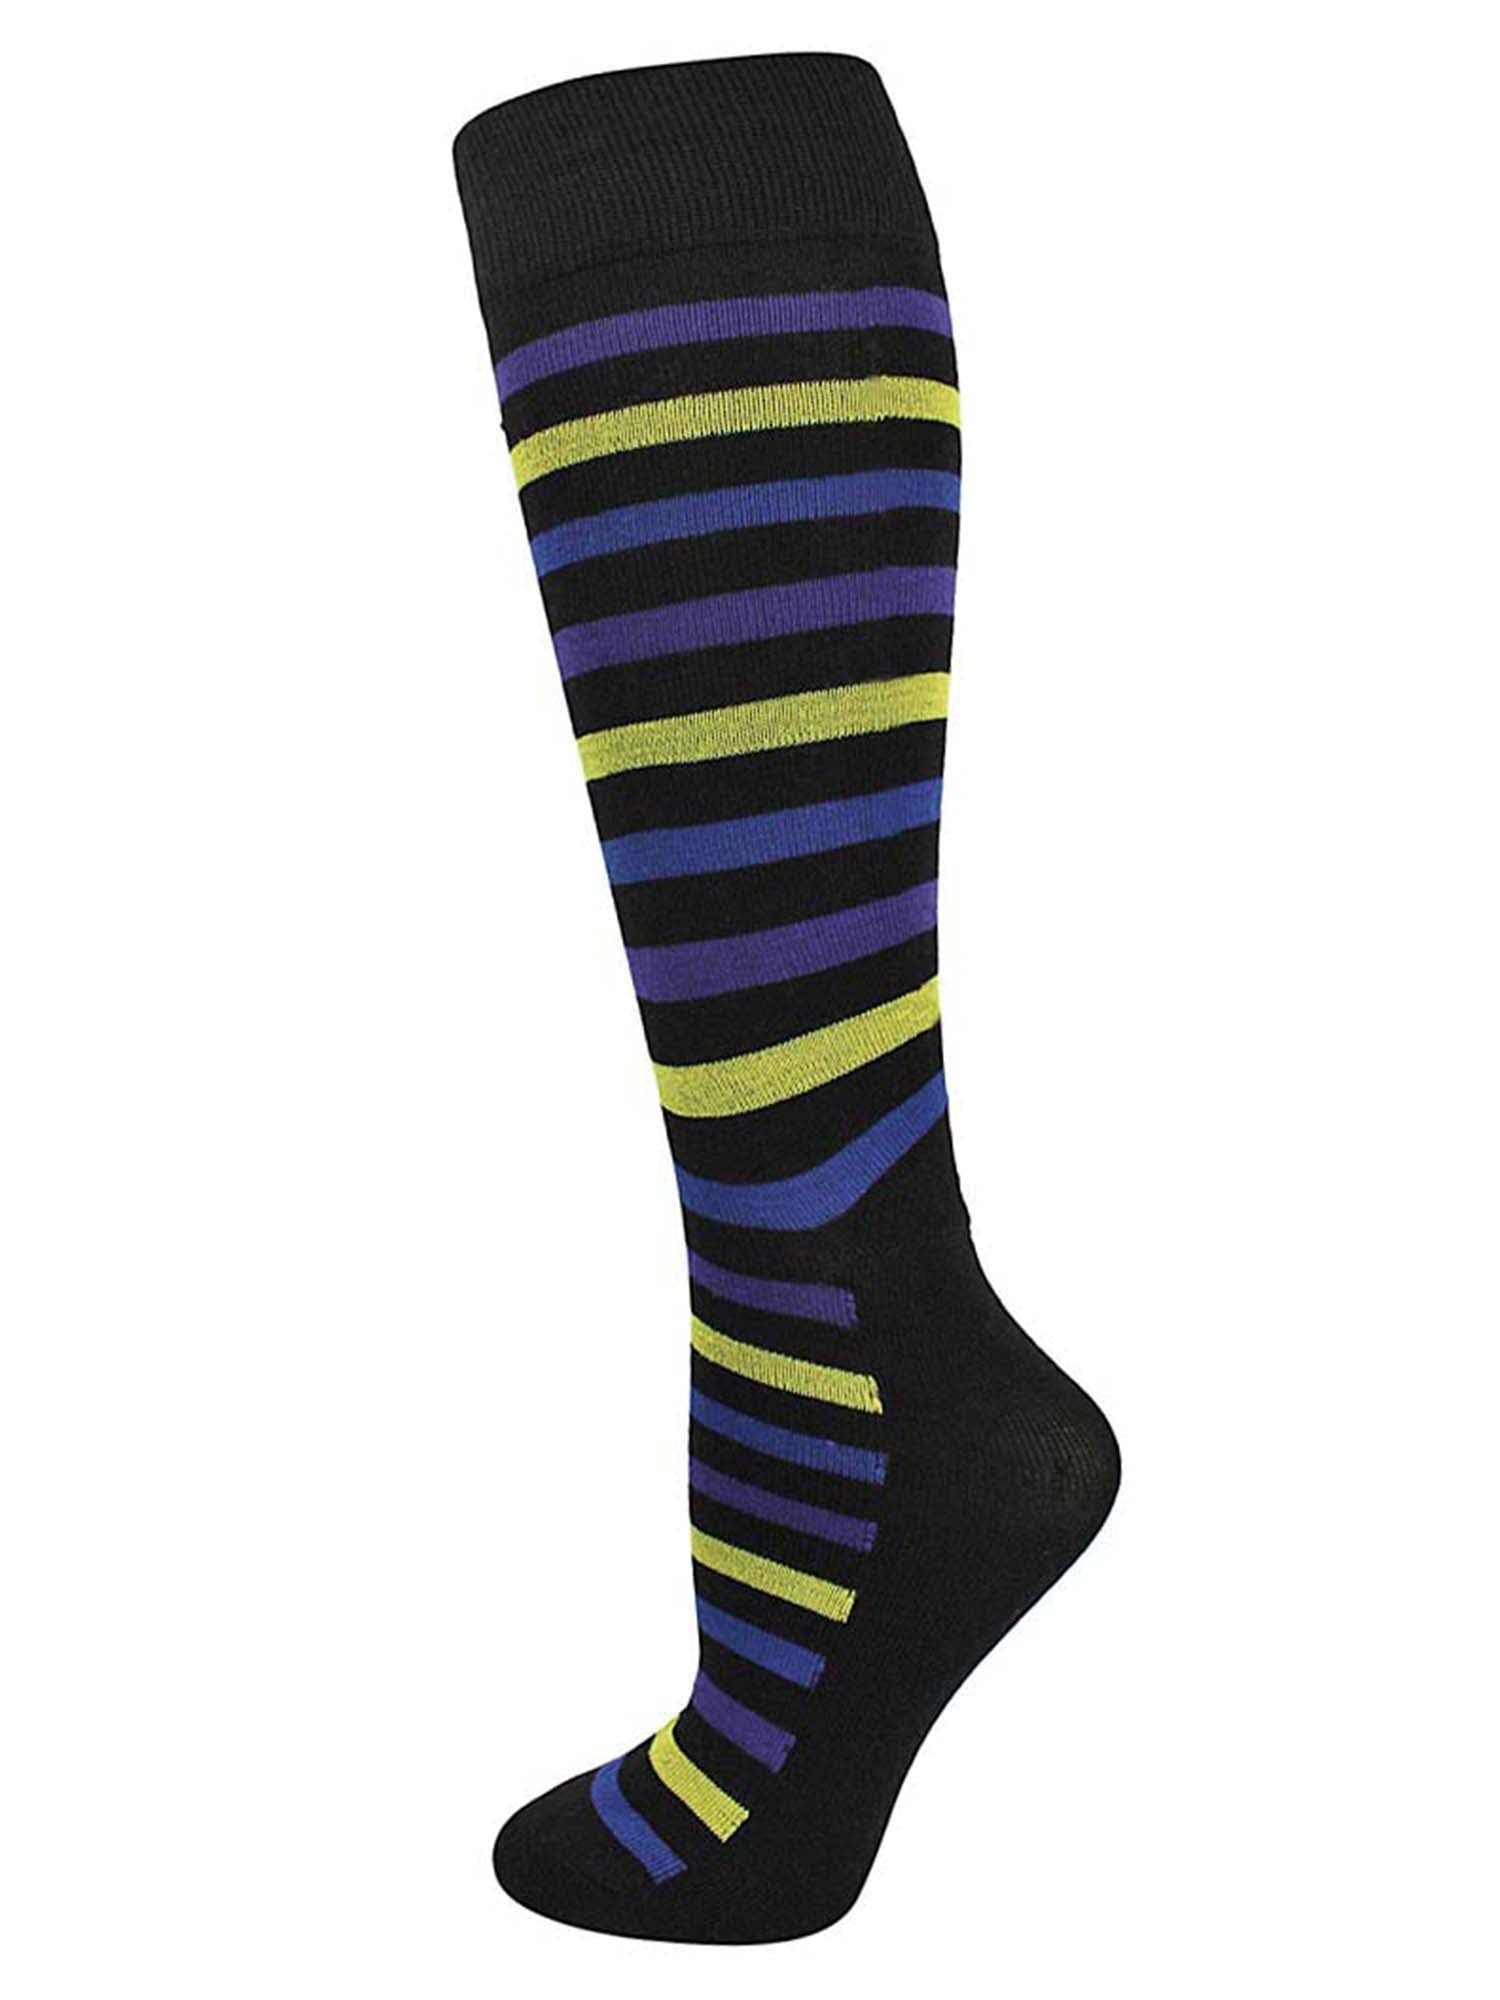 Fun Multicolor Striped Mens 6 Pack Dress Socks